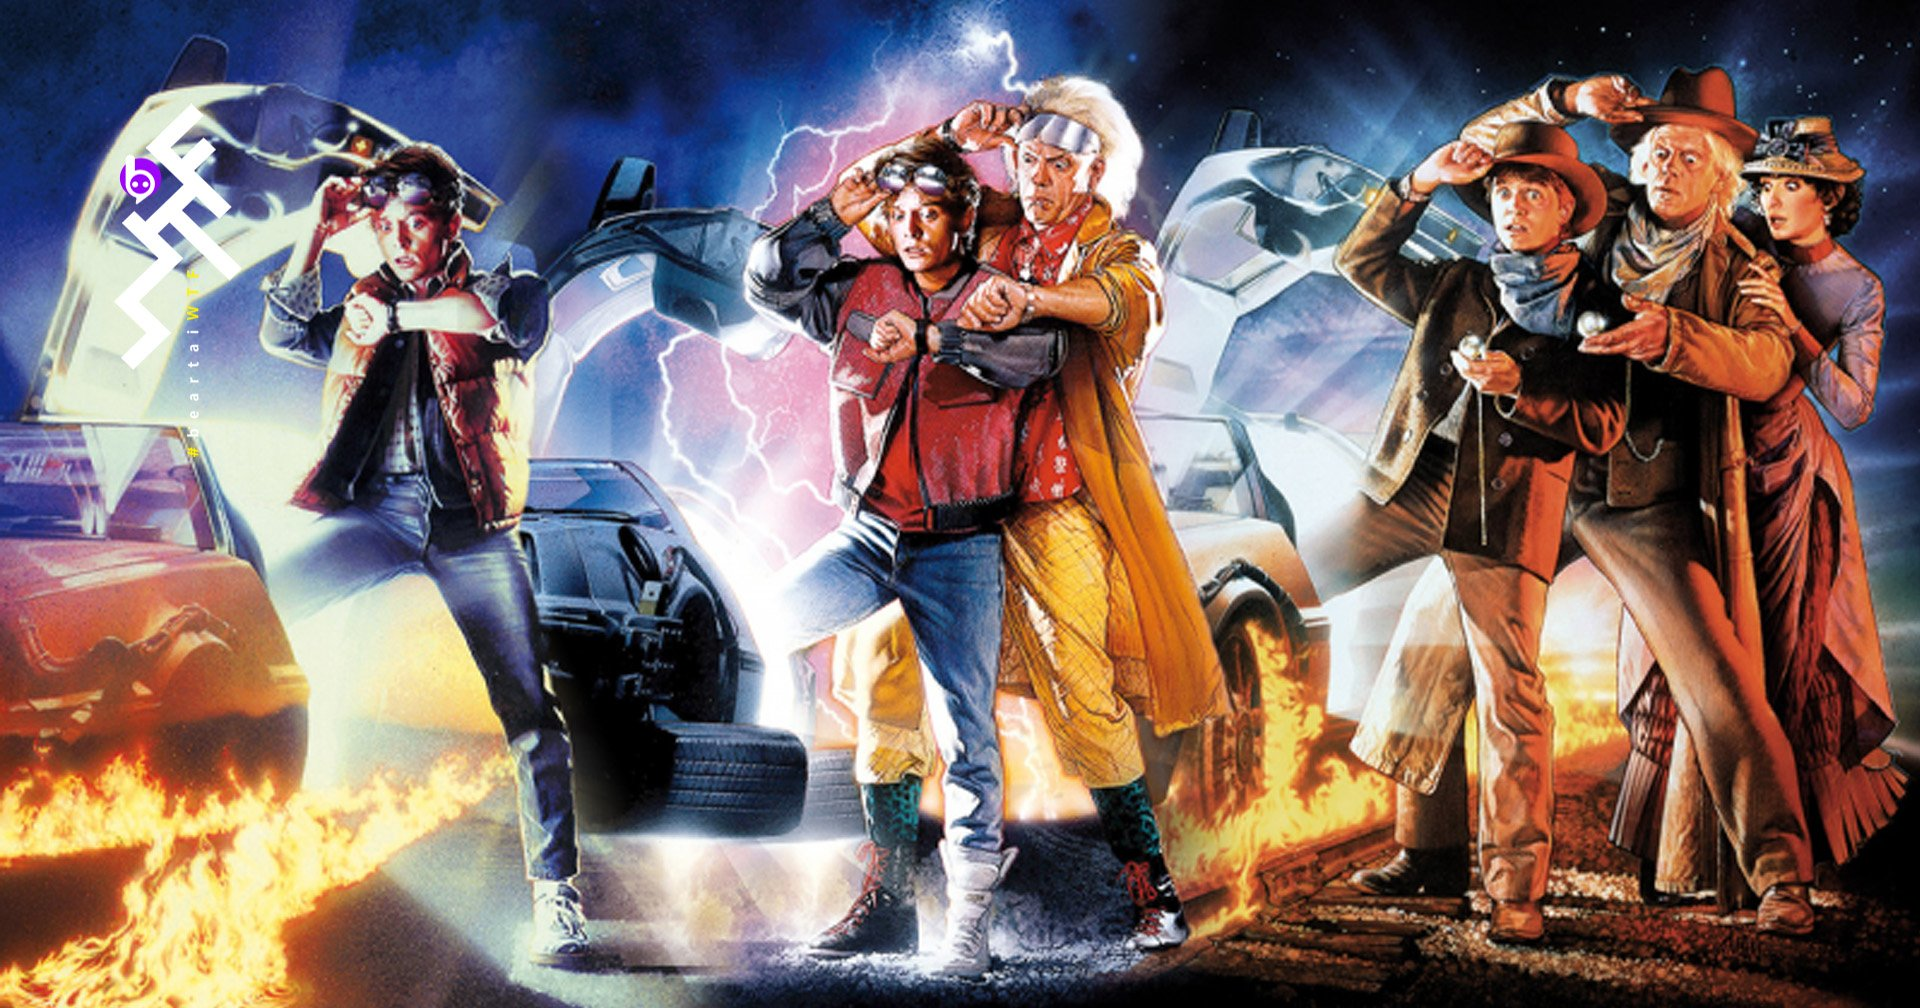 What the Fact of Back to the Future Trilogy